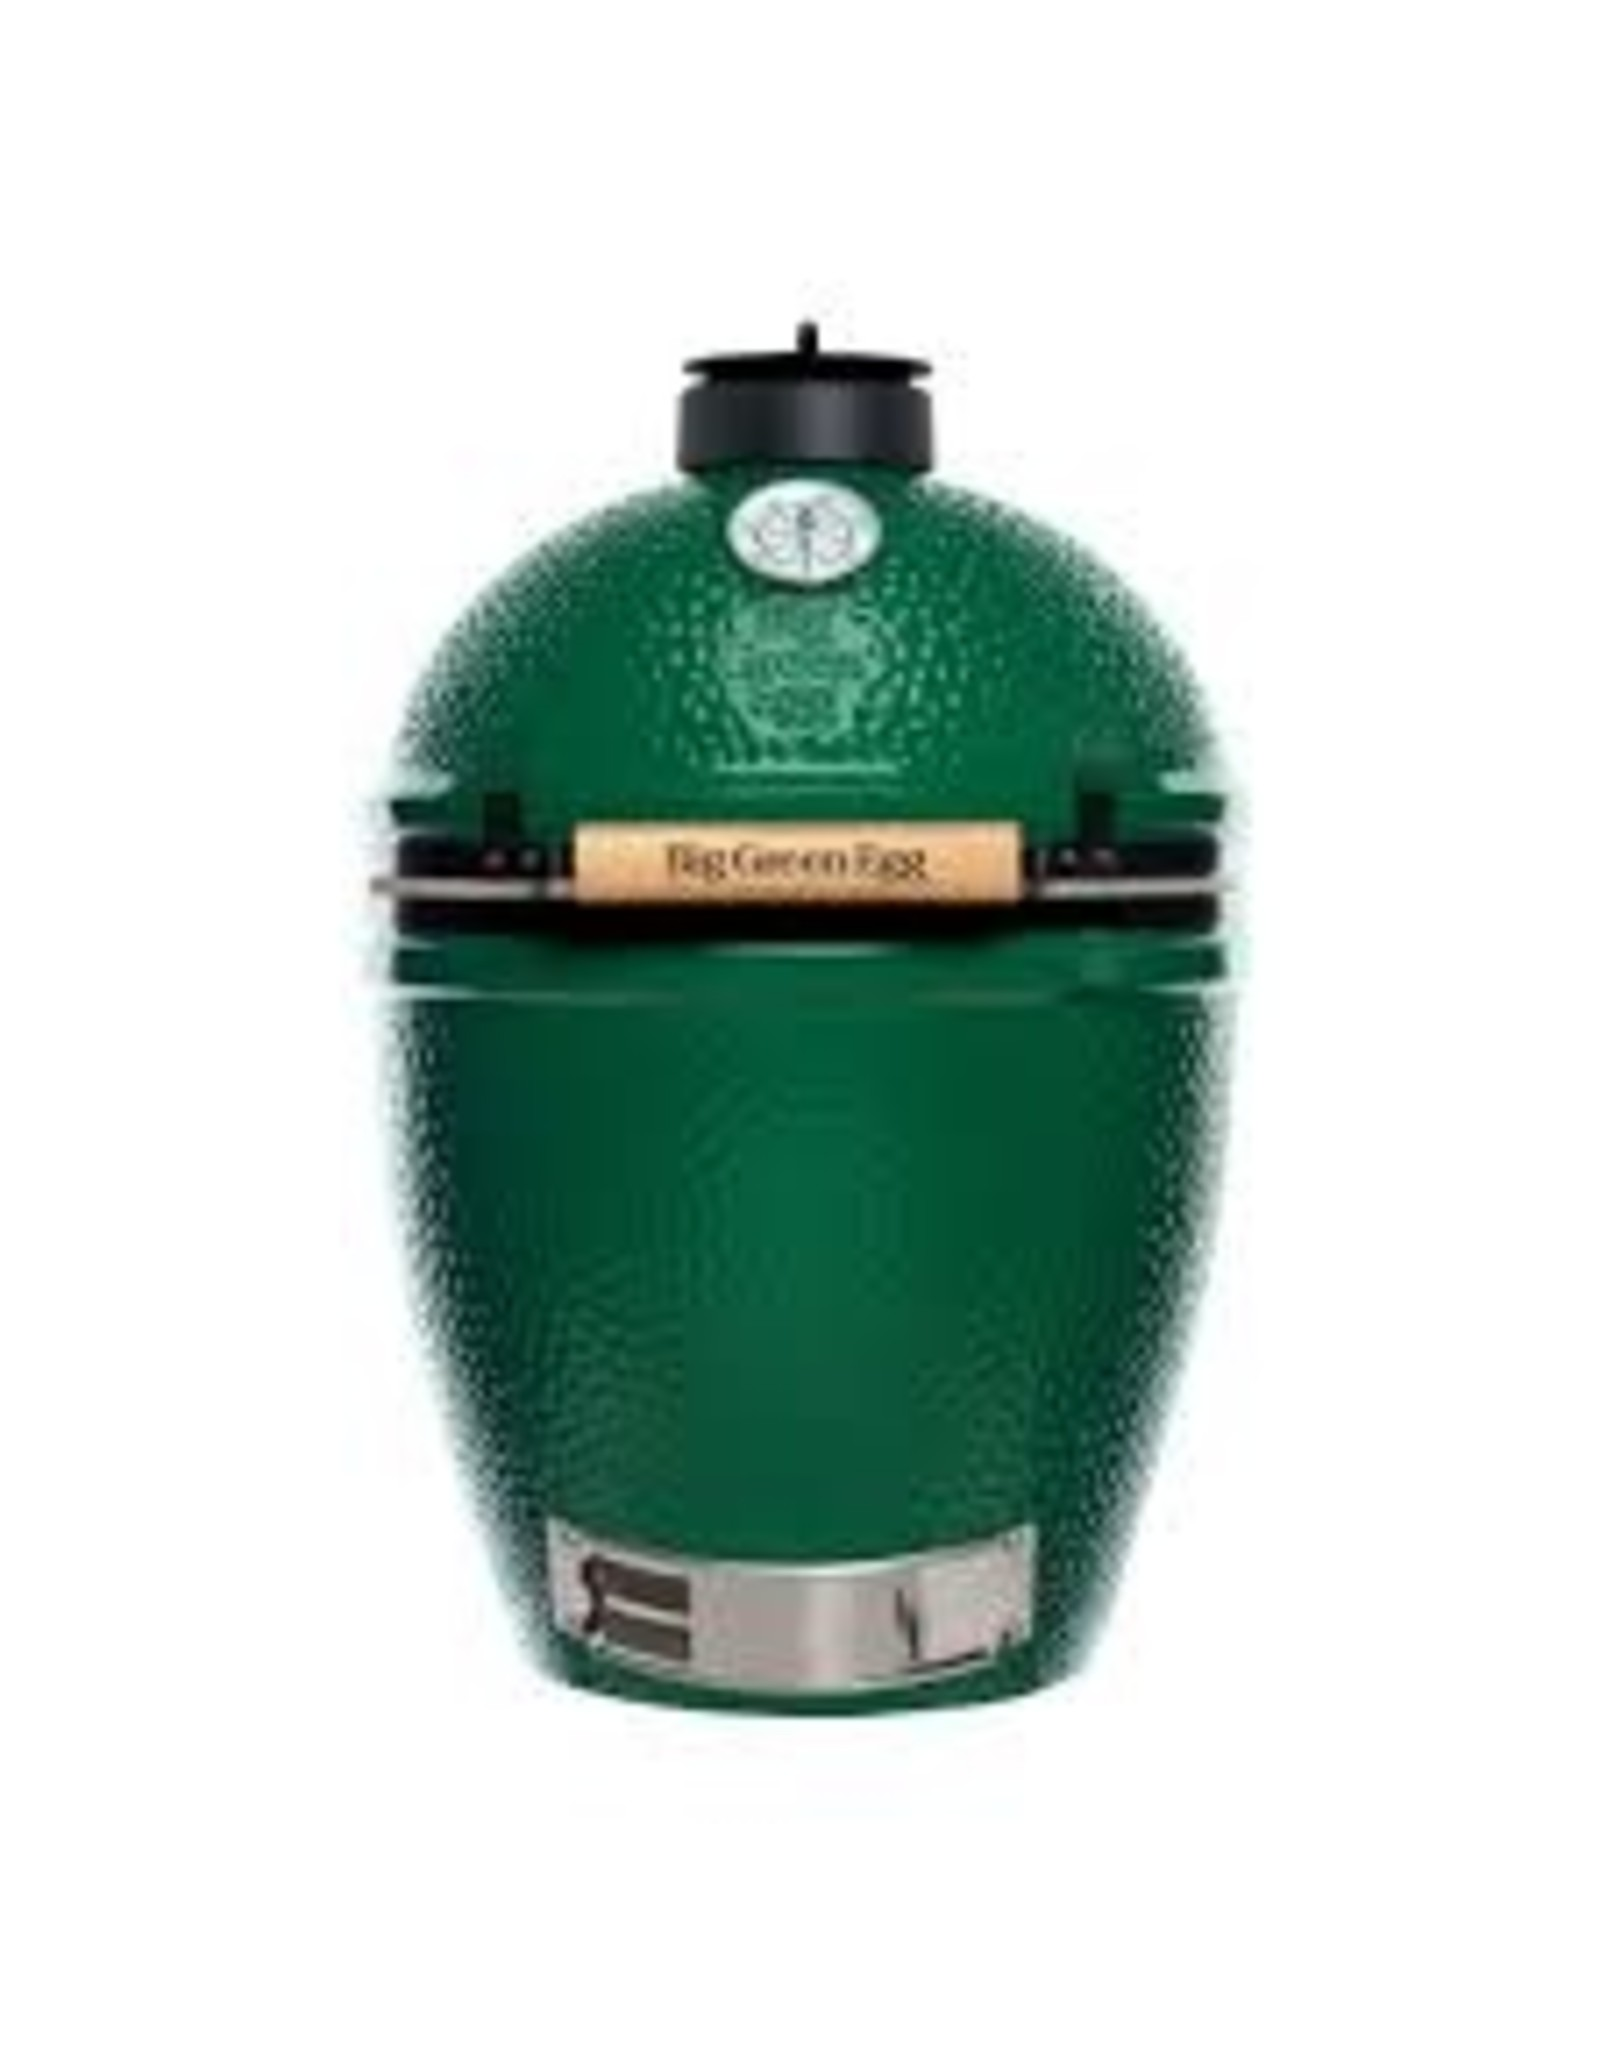 Big Green Egg BGE Egg Large